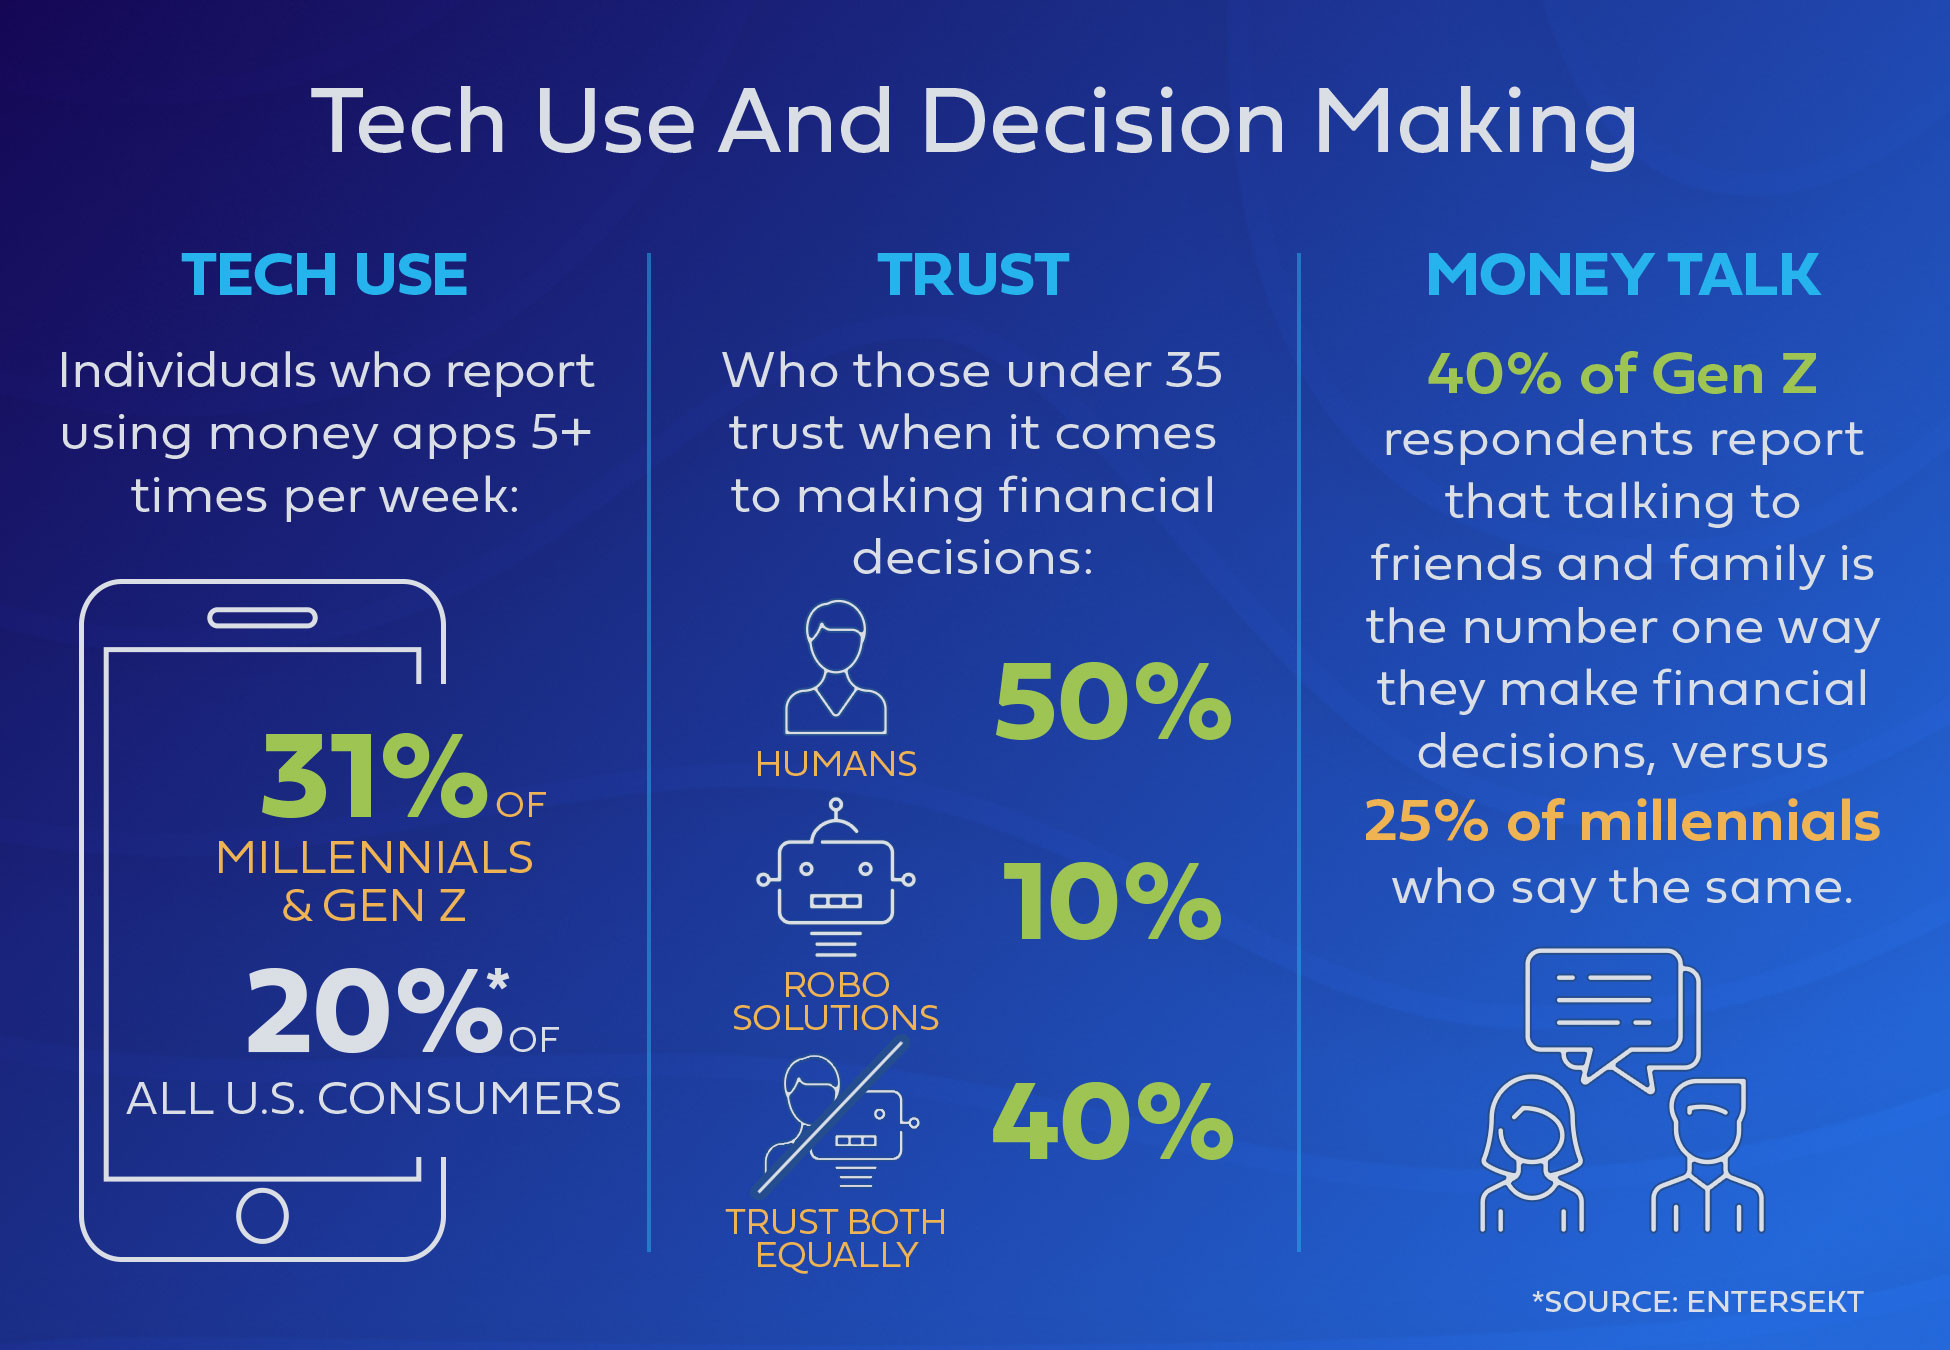 201907-Tech-Use-And-Financial-Decision-Making